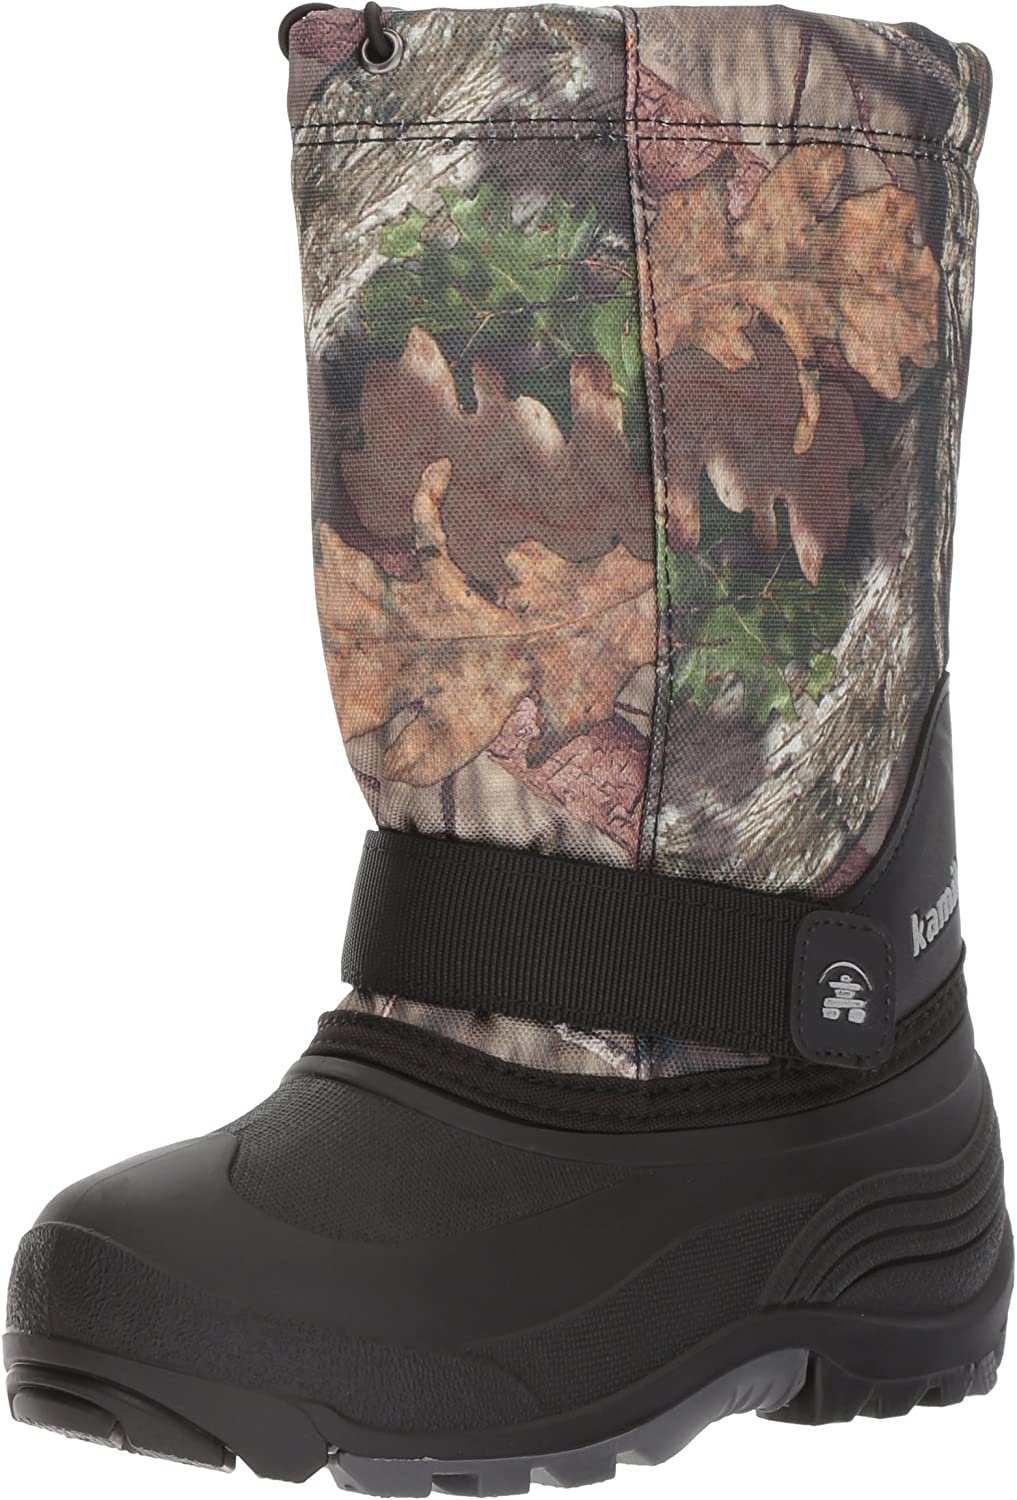 Kamik Unisex-Kids Rocketcamo Snow Snow Stiefel, Mossy Oak Camouflage, 3 Medium US Little Kid  klassischer Stil